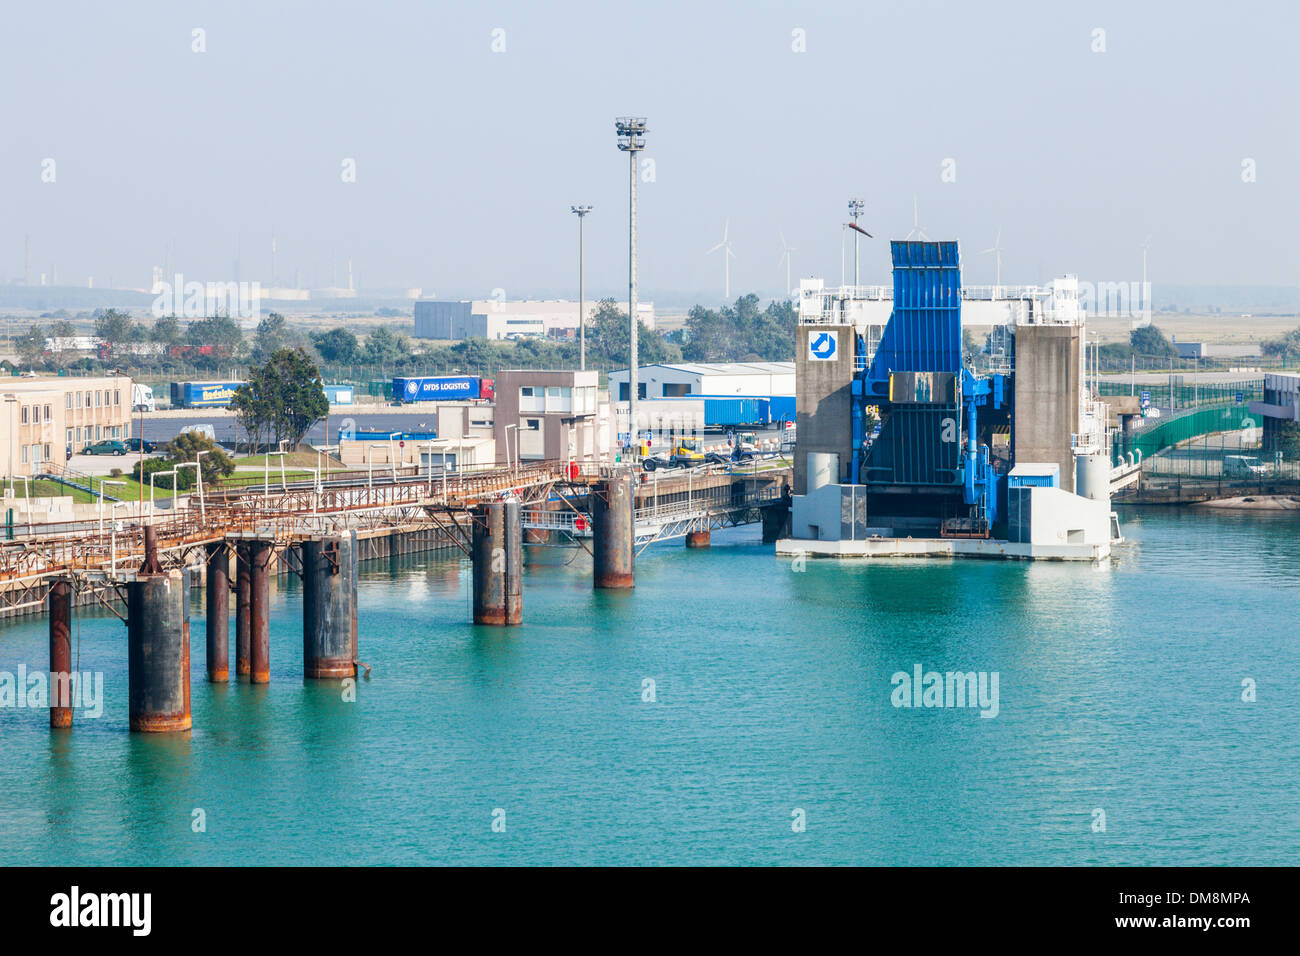 Empty ferry births at the port of Dunkirk, France. Stock Photo